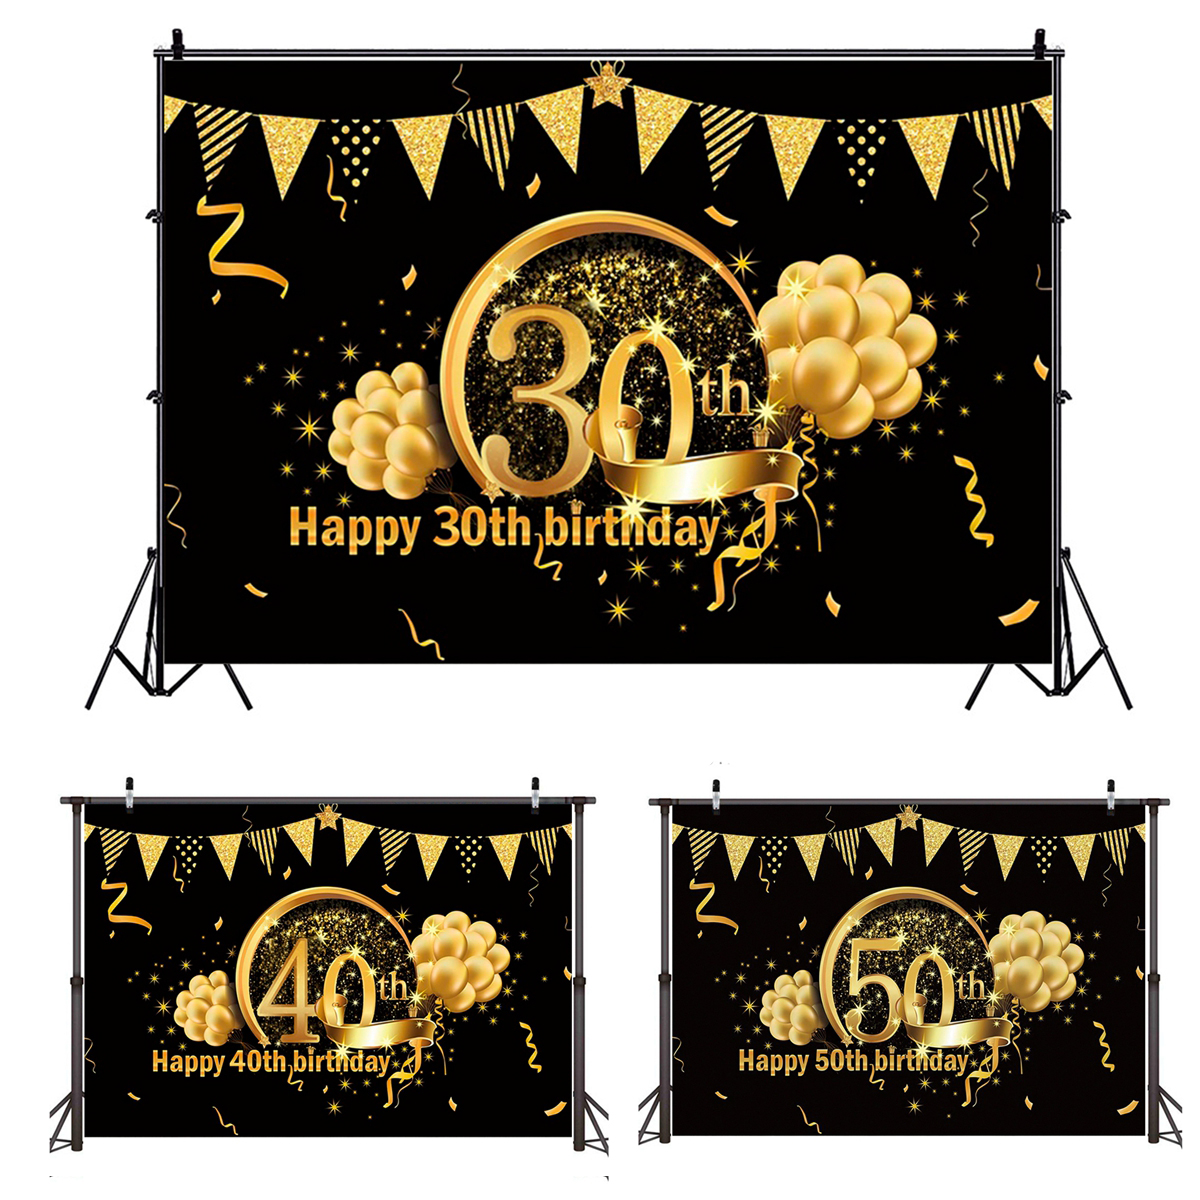 Birthday Background Decor 30 40 <font><b>50</b></font> Birthday Party Decor Adult 30th 40th 50th Birthday Party Supplies 30 Years <font><b>Anniversary</b></font> image